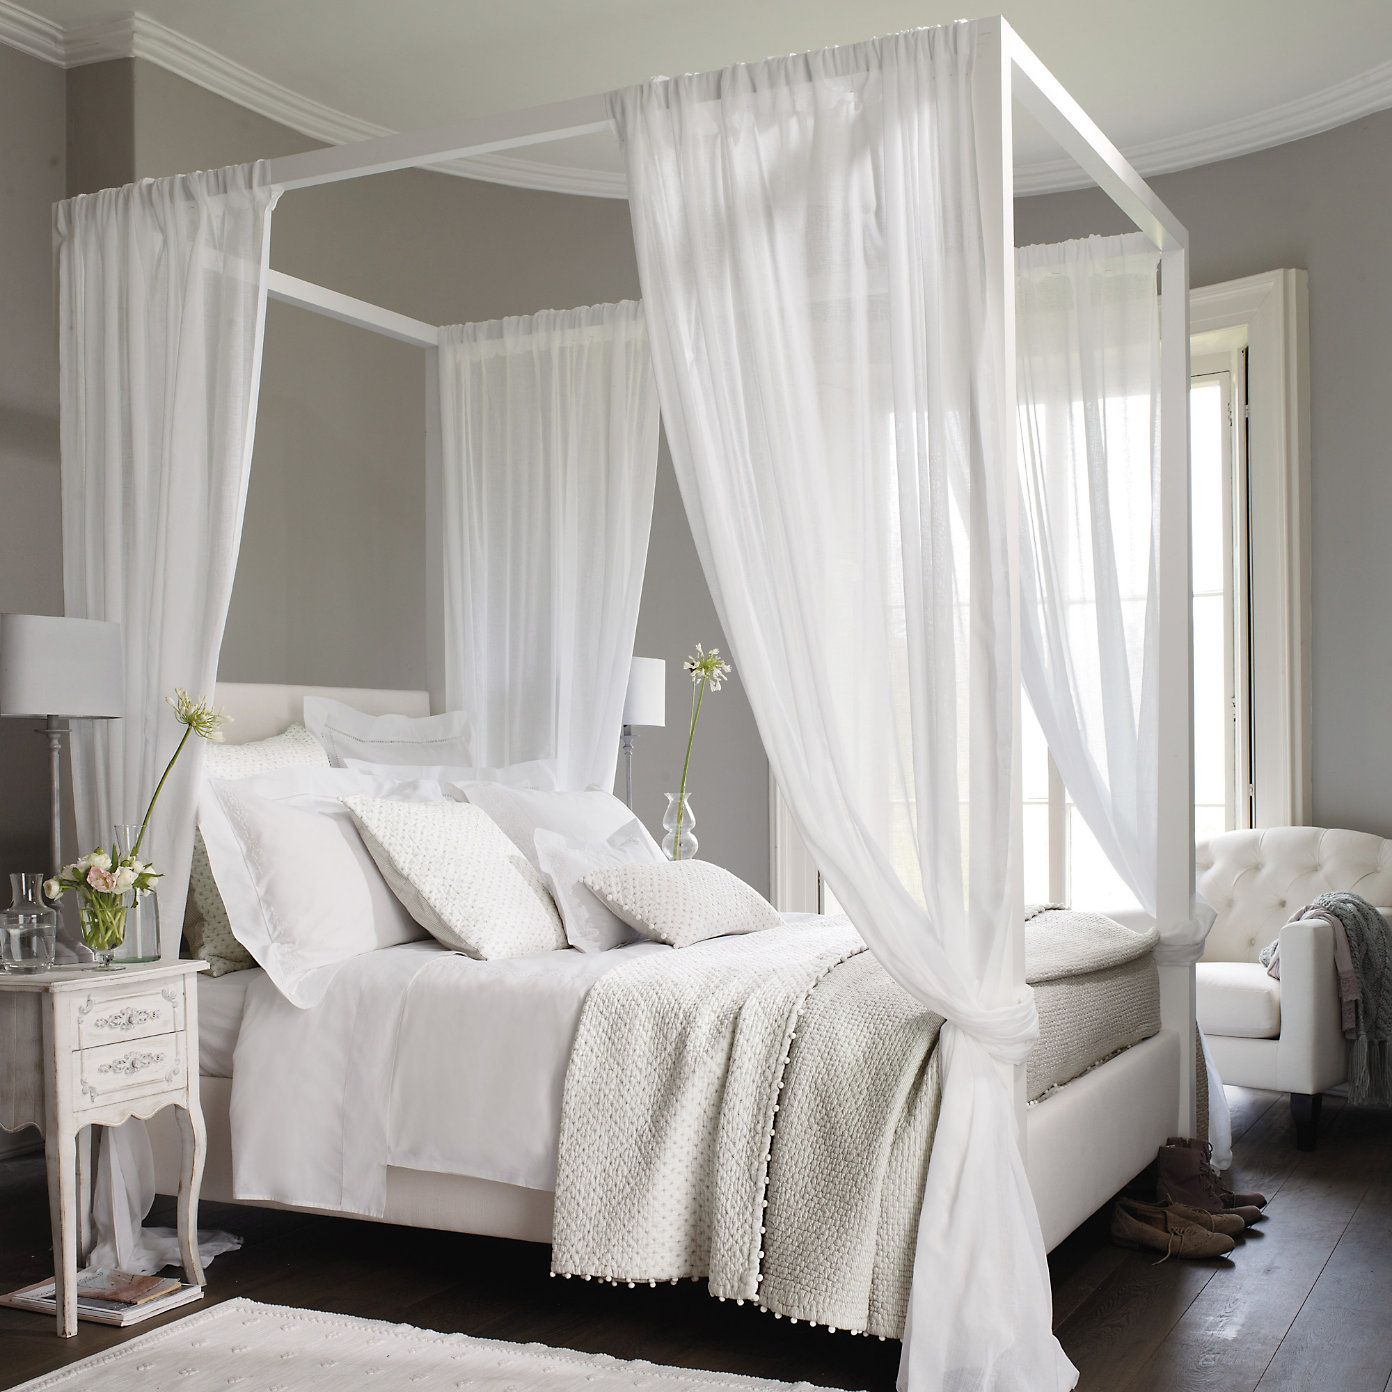 Grey Walls Dark Floors And White Bedroom Contemporary Color Scheme Softened With Four Poster